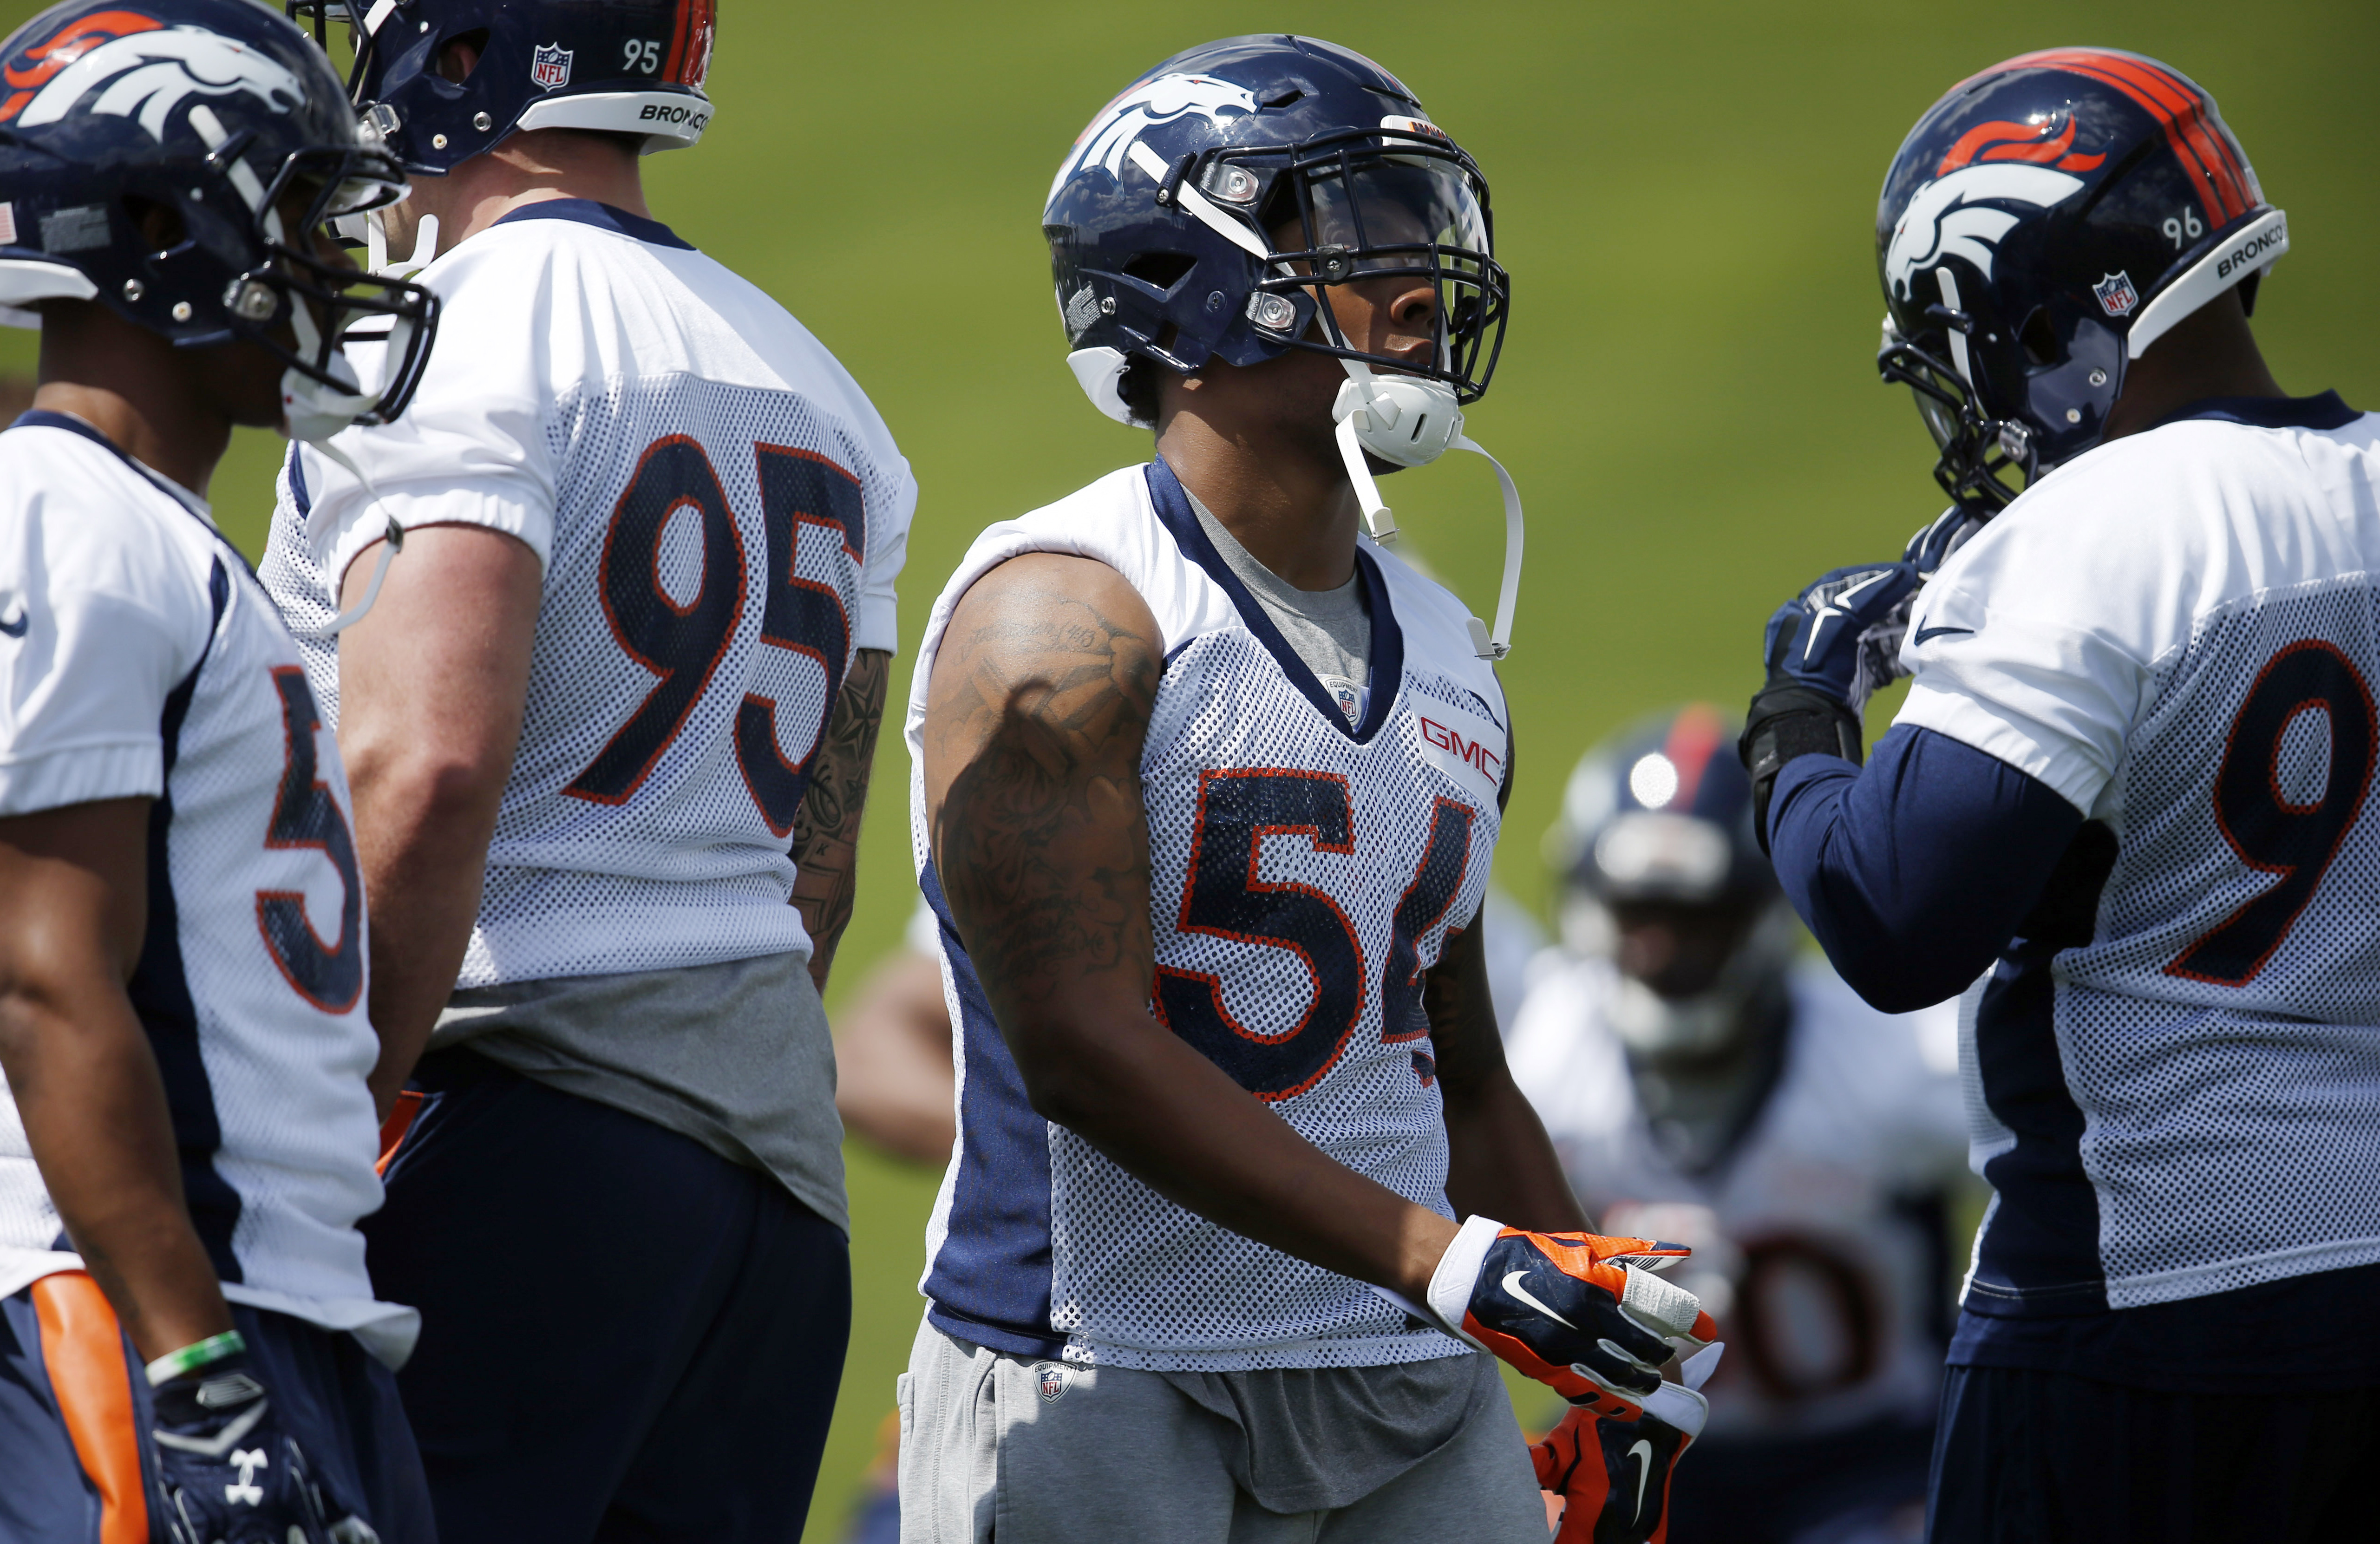 FILE - In this Tuesday, May 24, 2016, file photo, Denver Broncos linebacker Brandon Marshall works out during an NFL football practice at the team's headquarters in Englewood, Colo. Like fellow Broncos linebacker Von Miller, Marshall is awaiting a big con